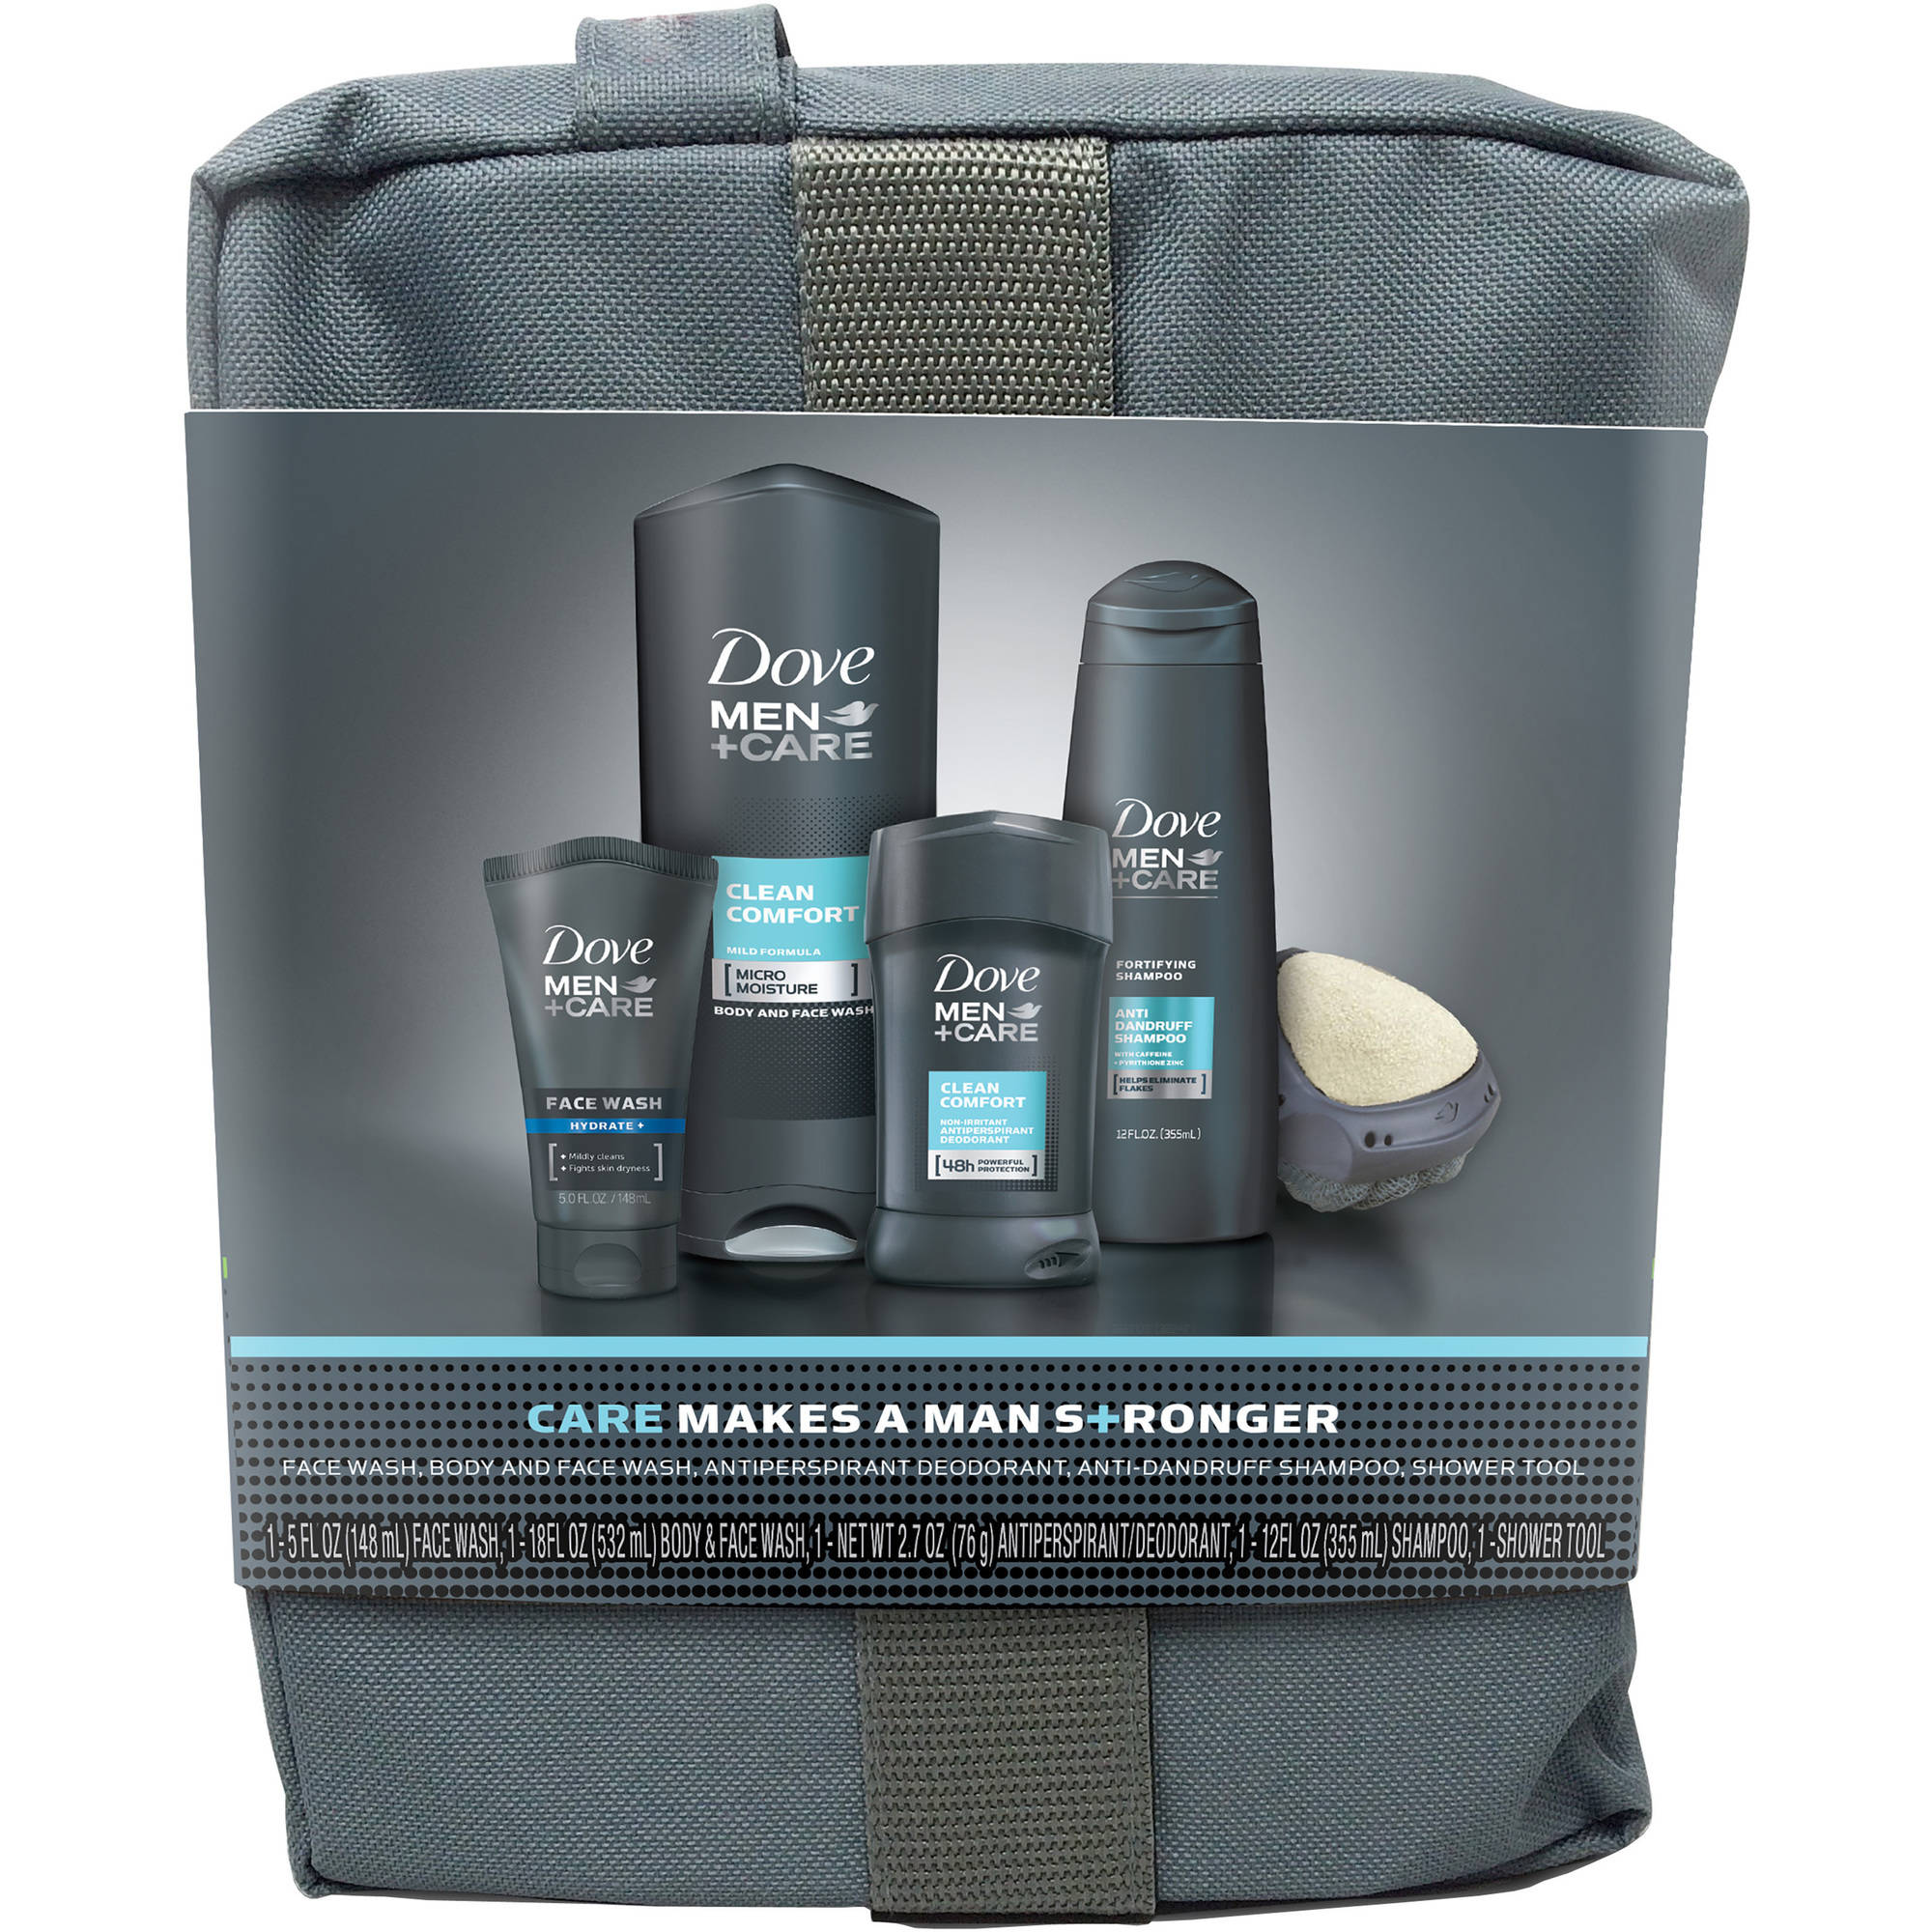 Dove Men+Care Clean Comfort Gift Bag, 5 pc